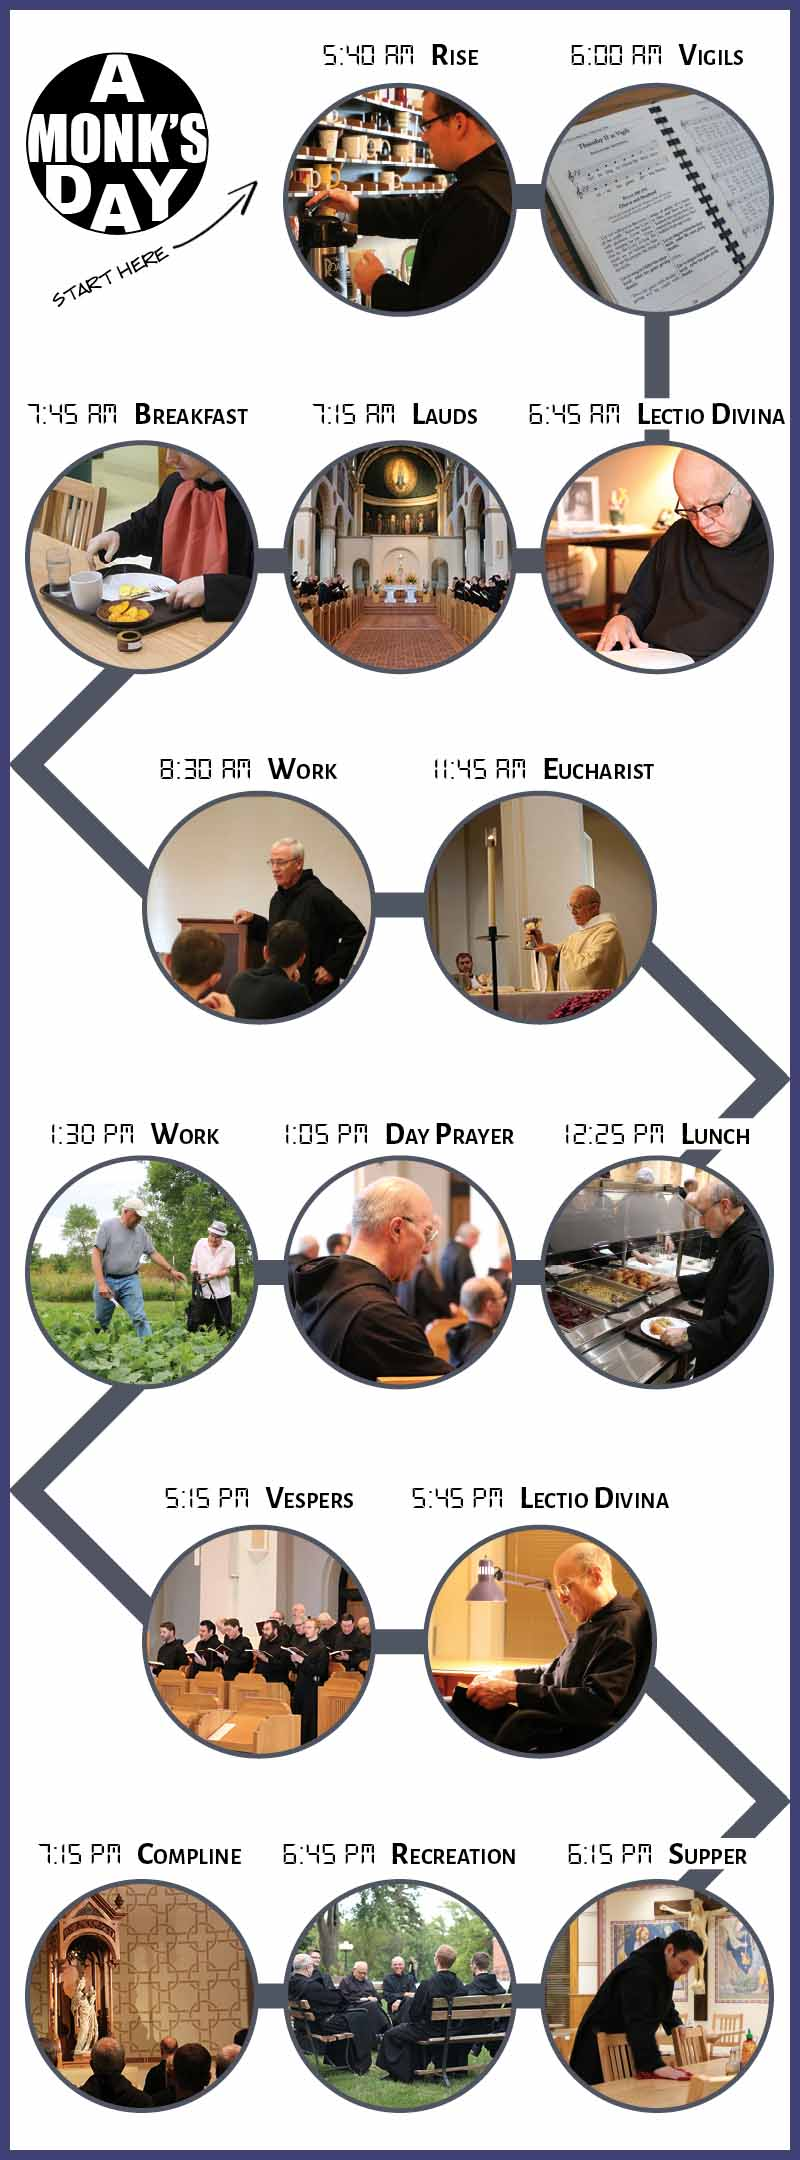 The daily schedule of the monks of Conception Abbey